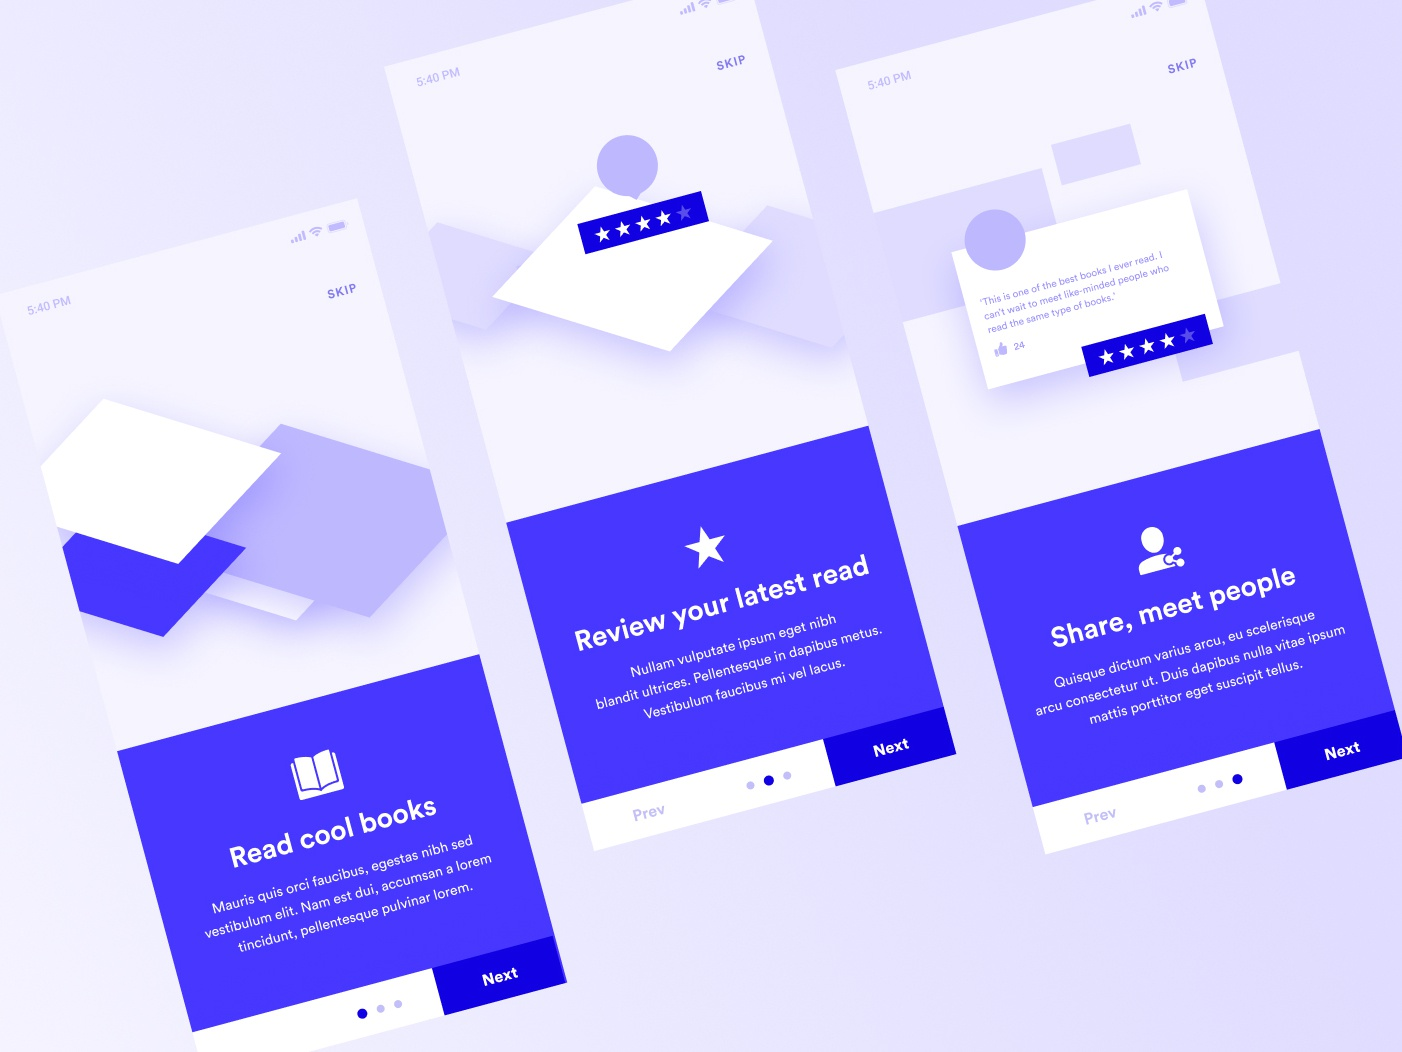 Book Review App Onboarding Wireframes by Madalin Duca on